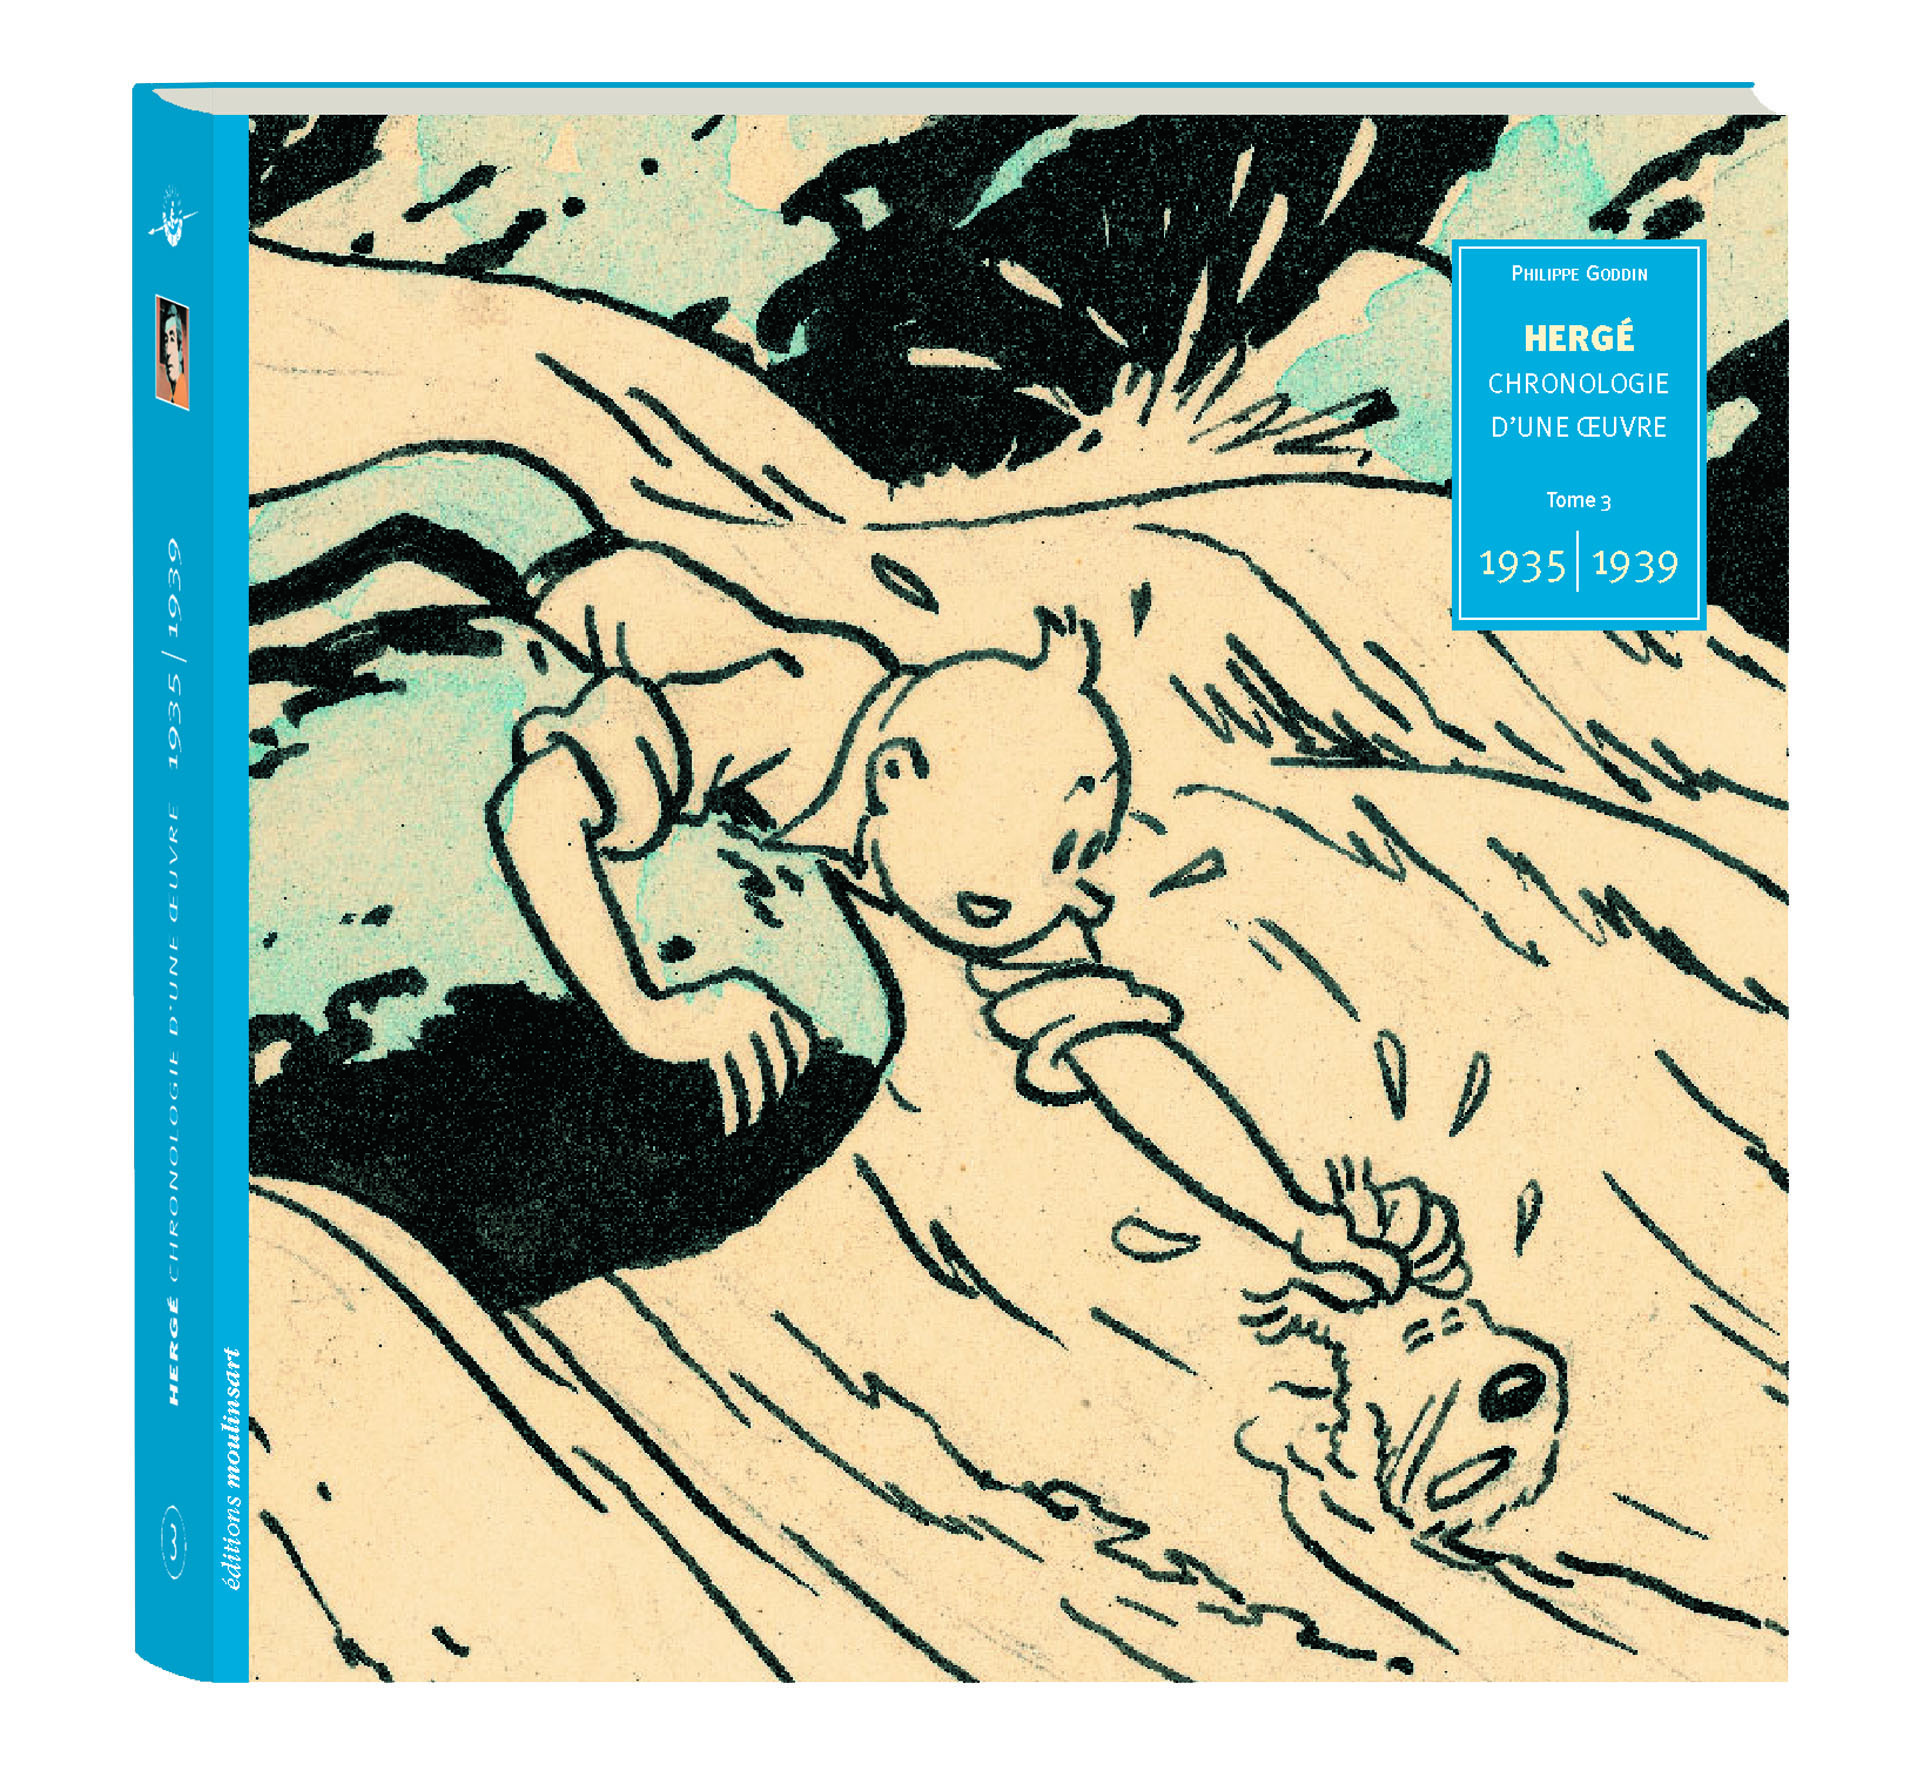 HERGE : CHRONOLOGIE D'UNE OEUVRE T3